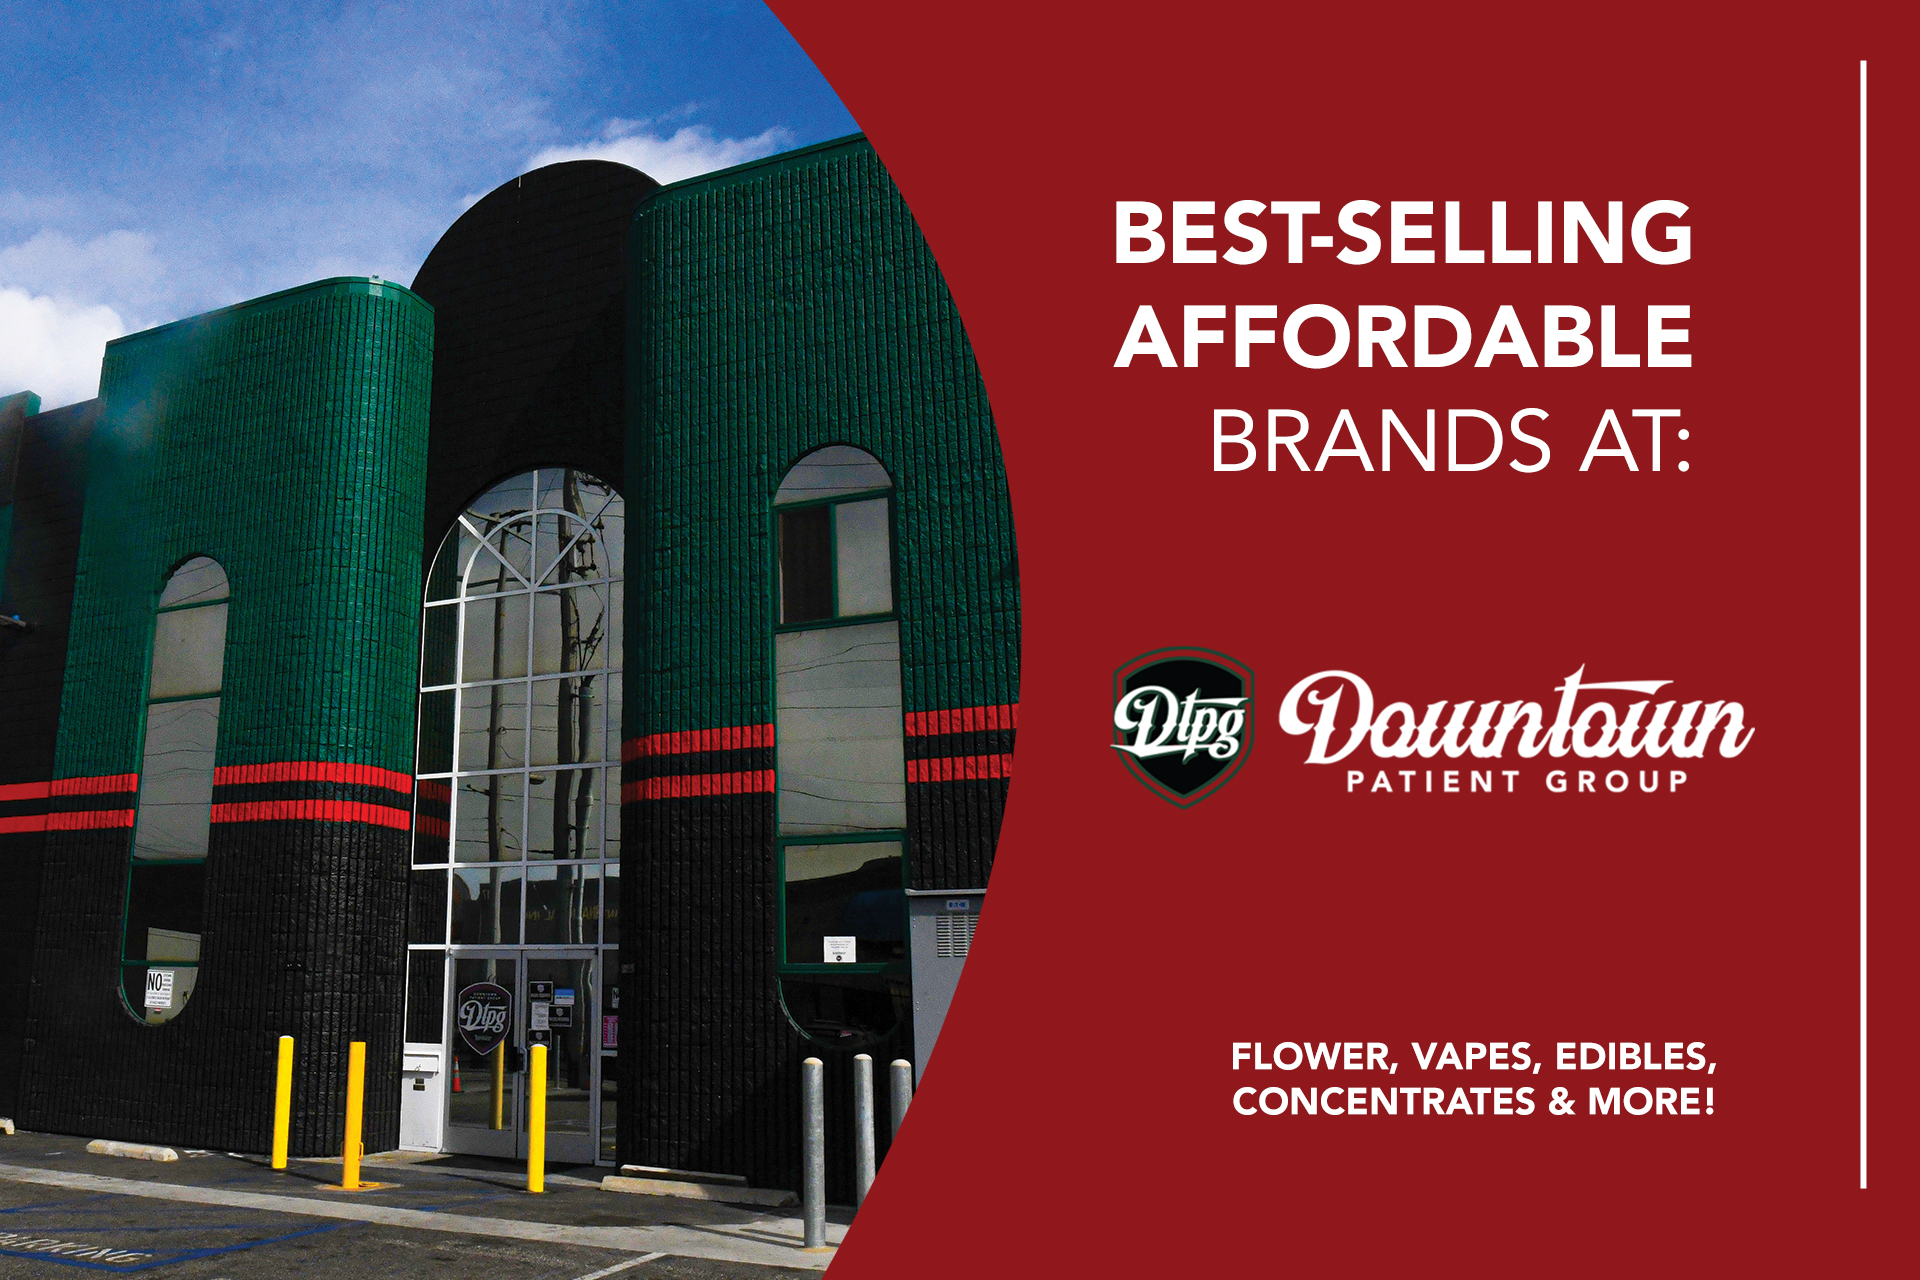 Guide To The Best-Selling Affordable Cannabis Brands At DTPG